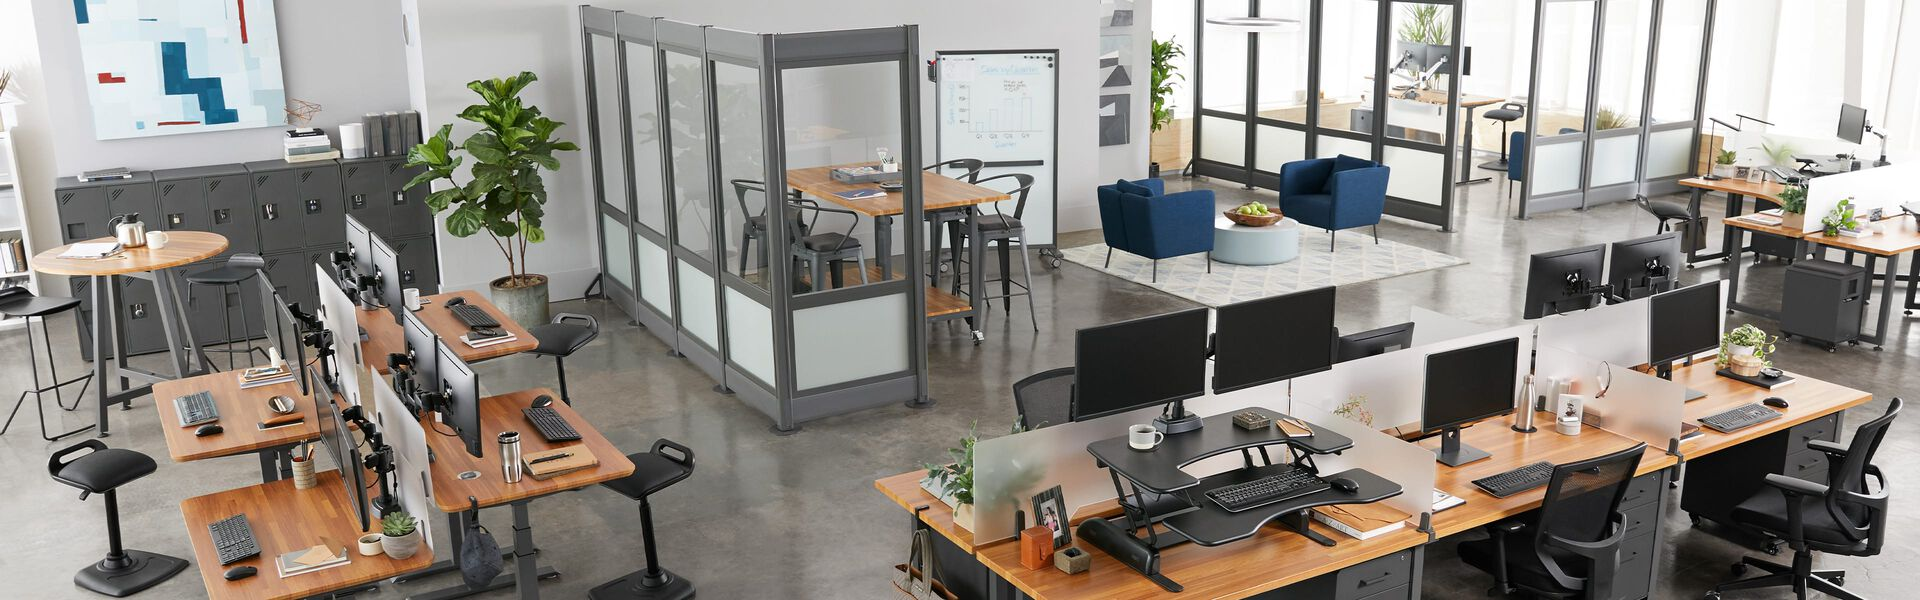 Open office as seen from above with Vari product